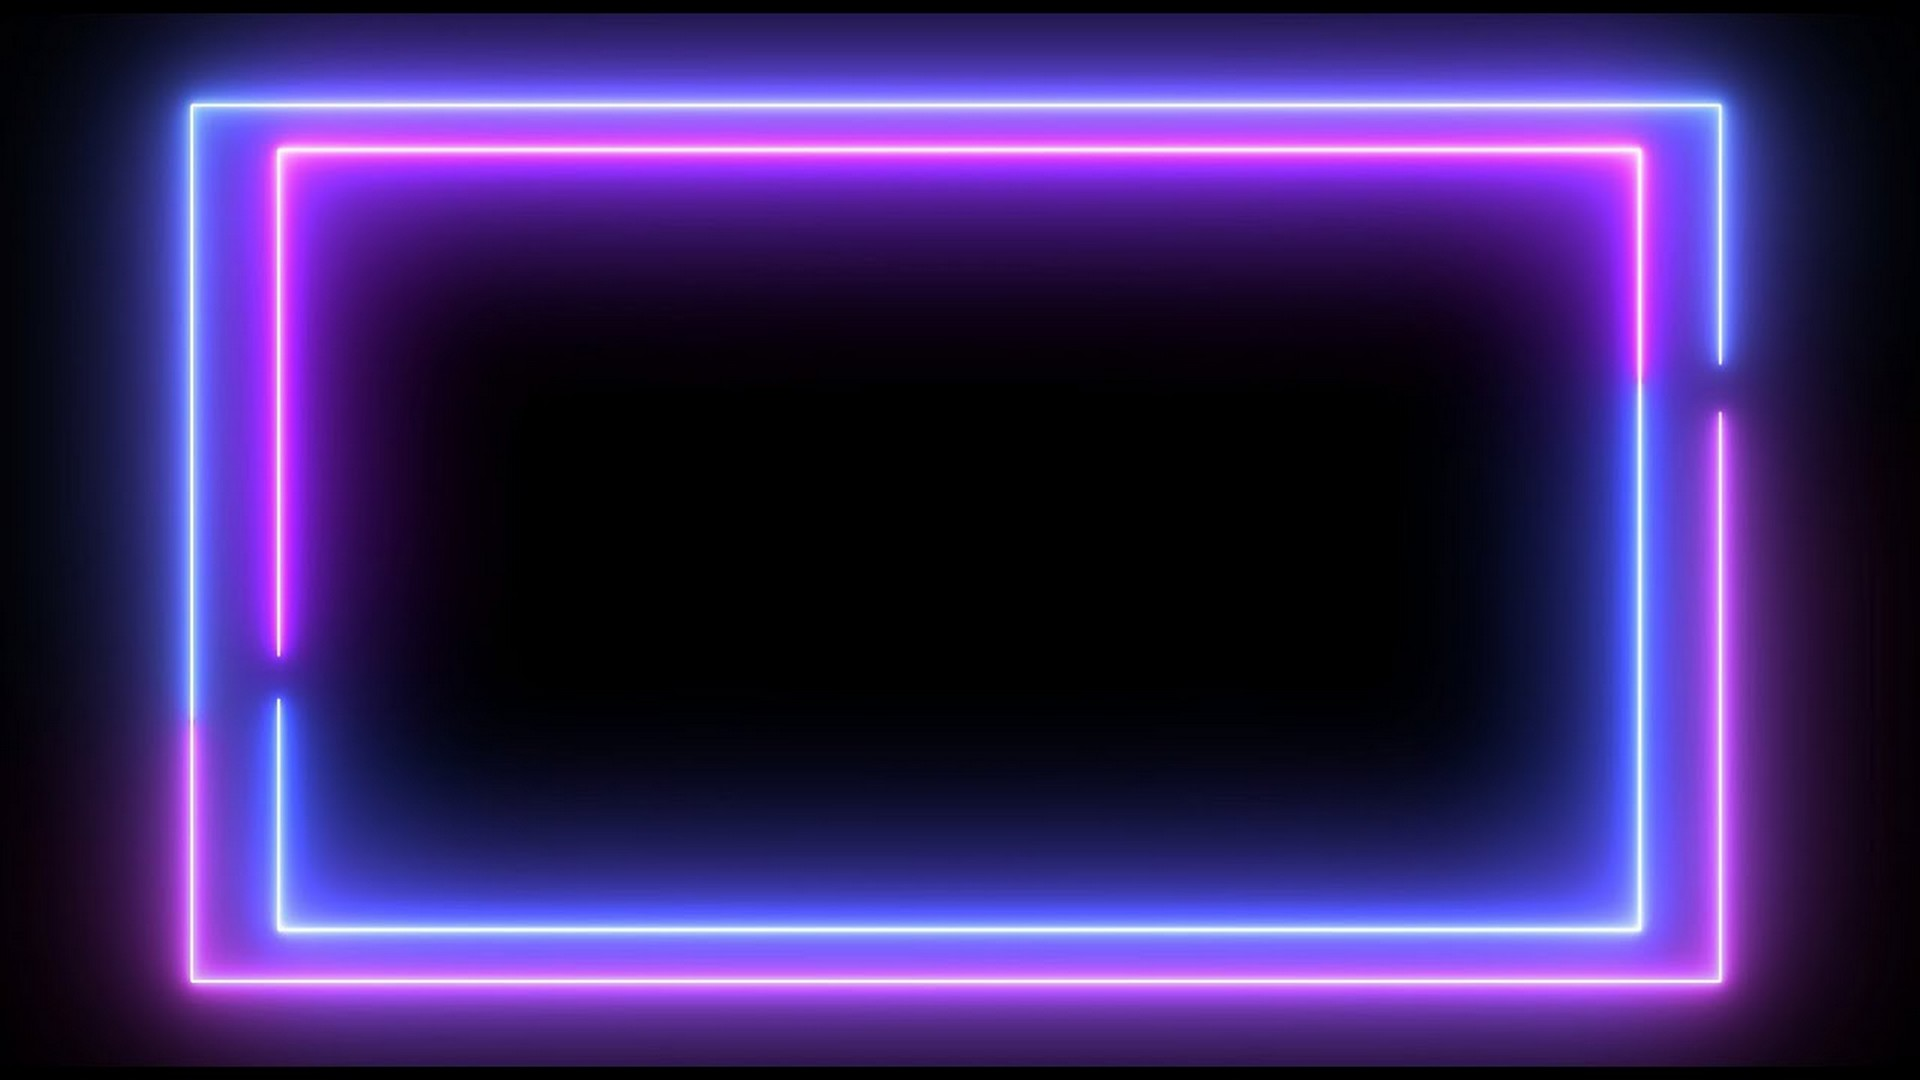 Neon Purple HD Wallpaper with high-resolution 1920x1080 pixel. You can use this wallpaper for your Desktop Computer Backgrounds, Mac Wallpapers, Android Lock screen or iPhone Screensavers and another smartphone device